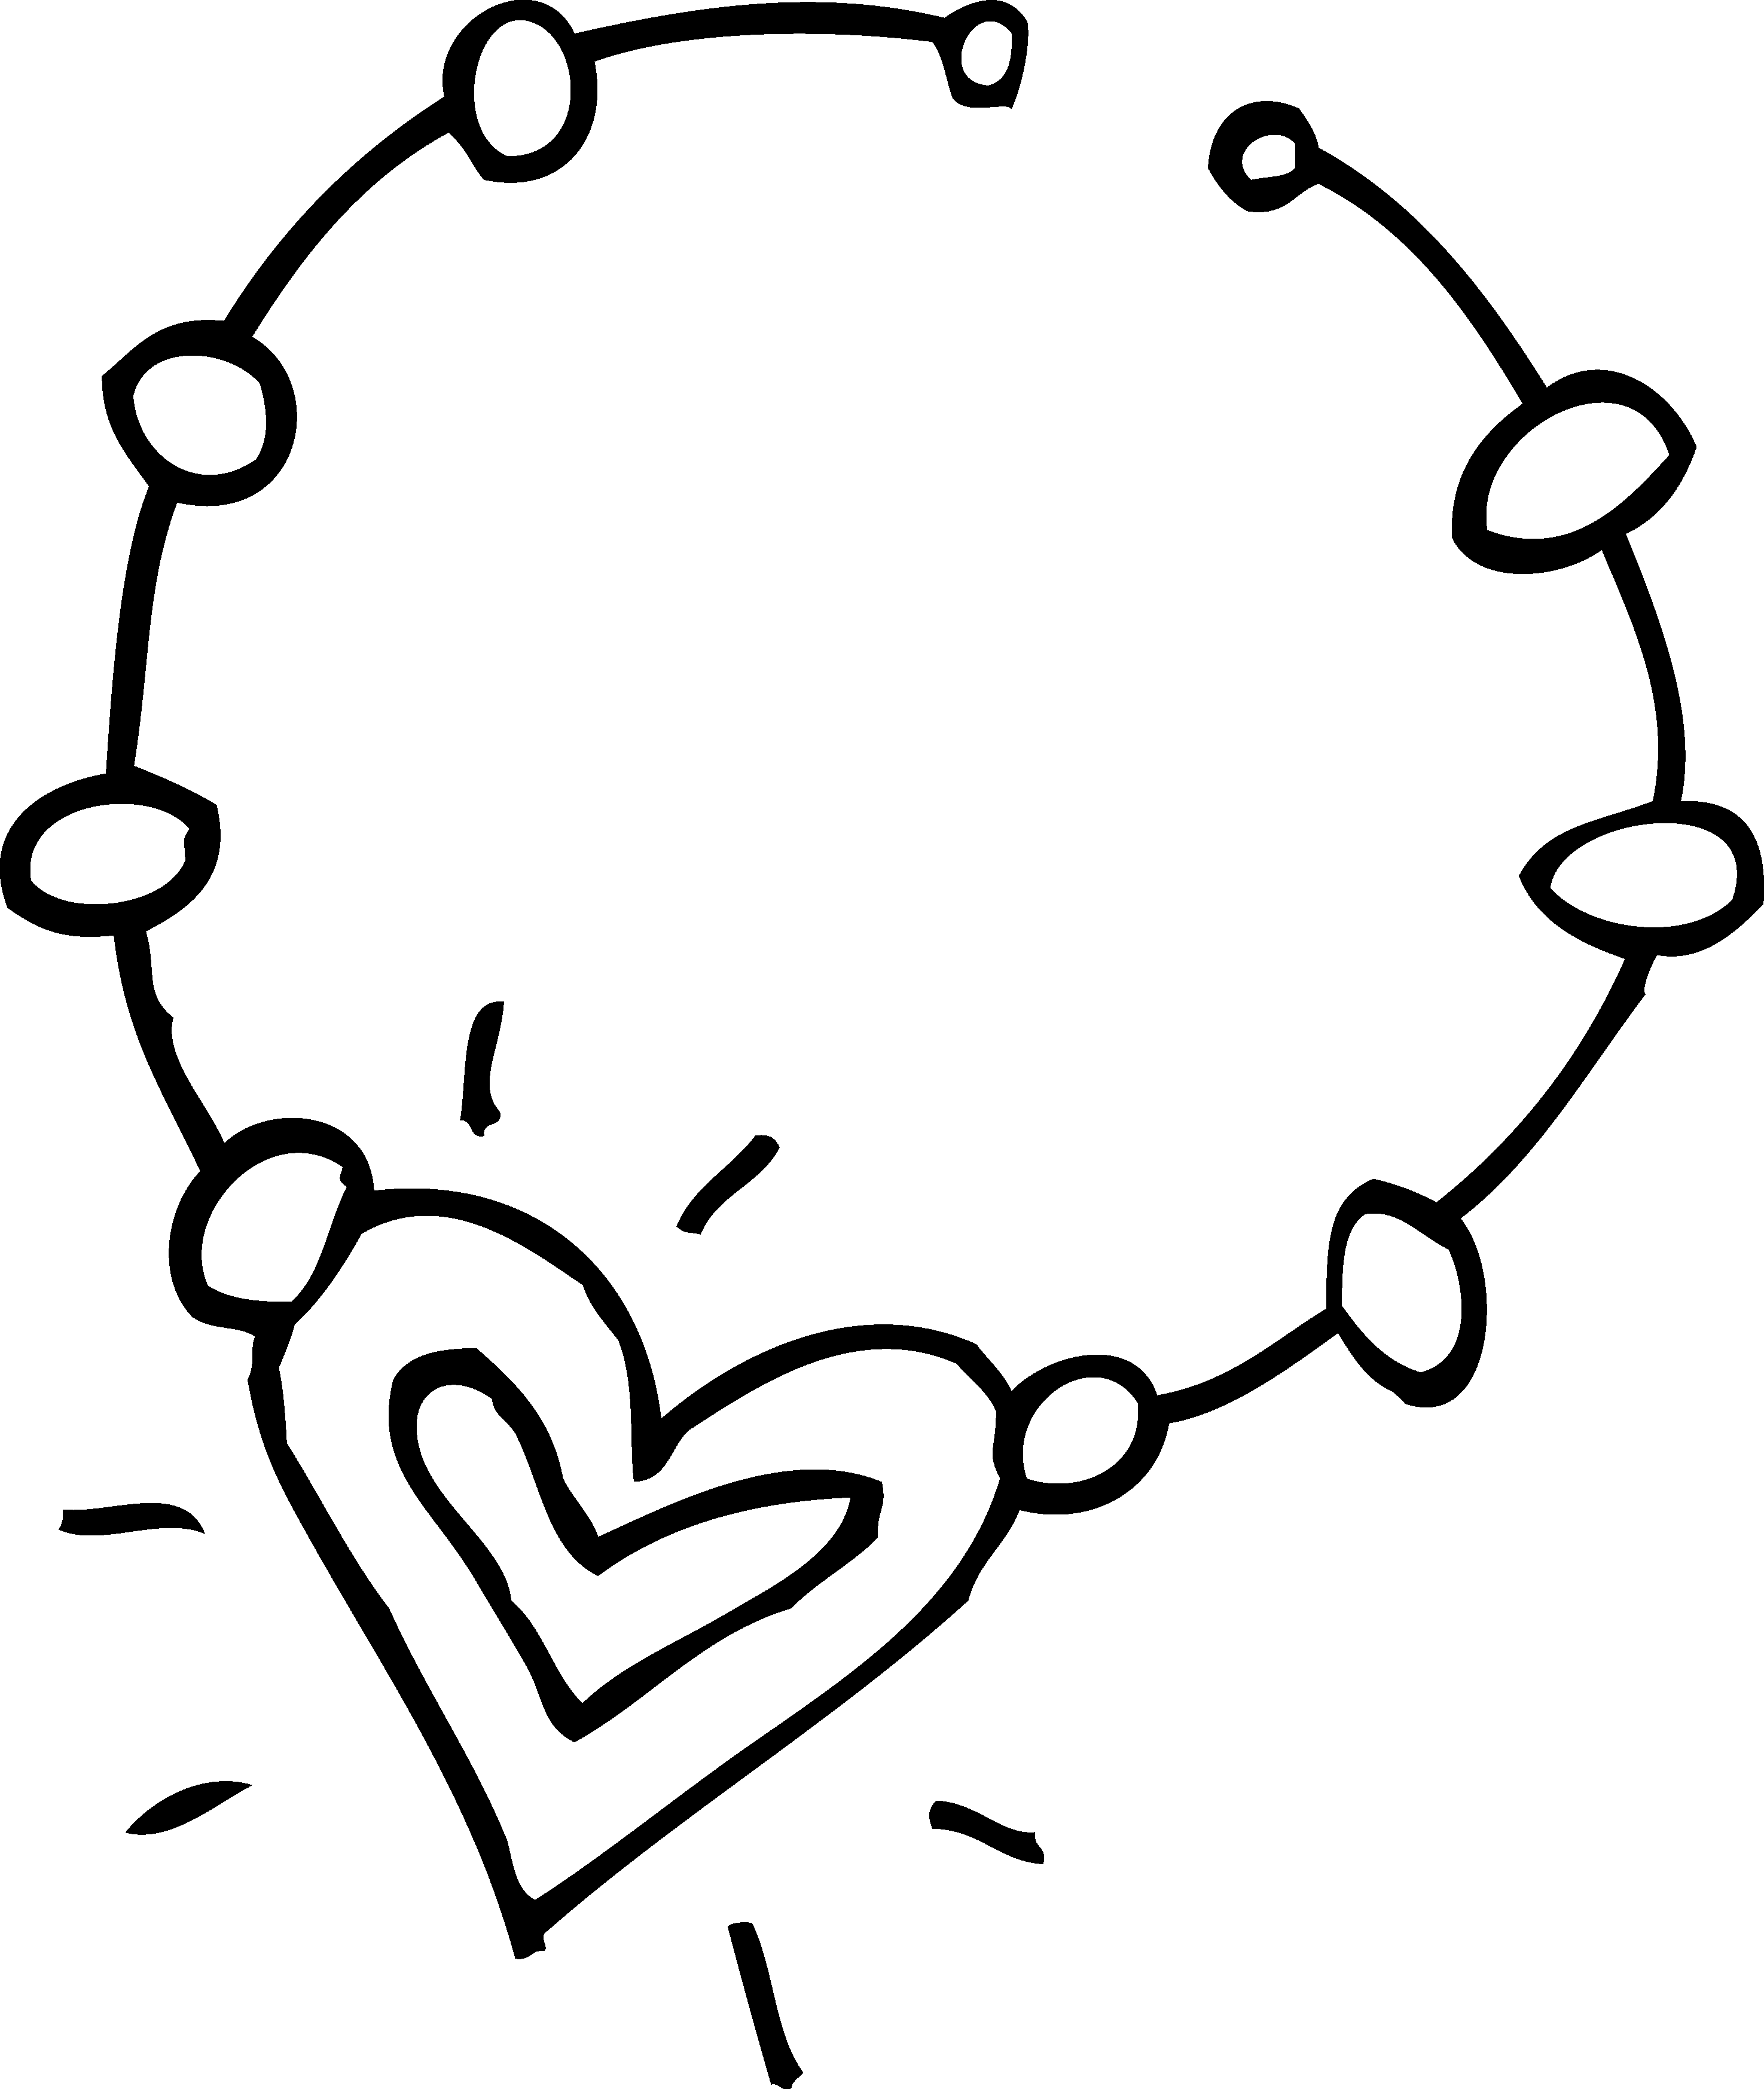 Heart chain clipart picture freeuse Baseball Diamond Clipart Black And White | Free download best ... picture freeuse